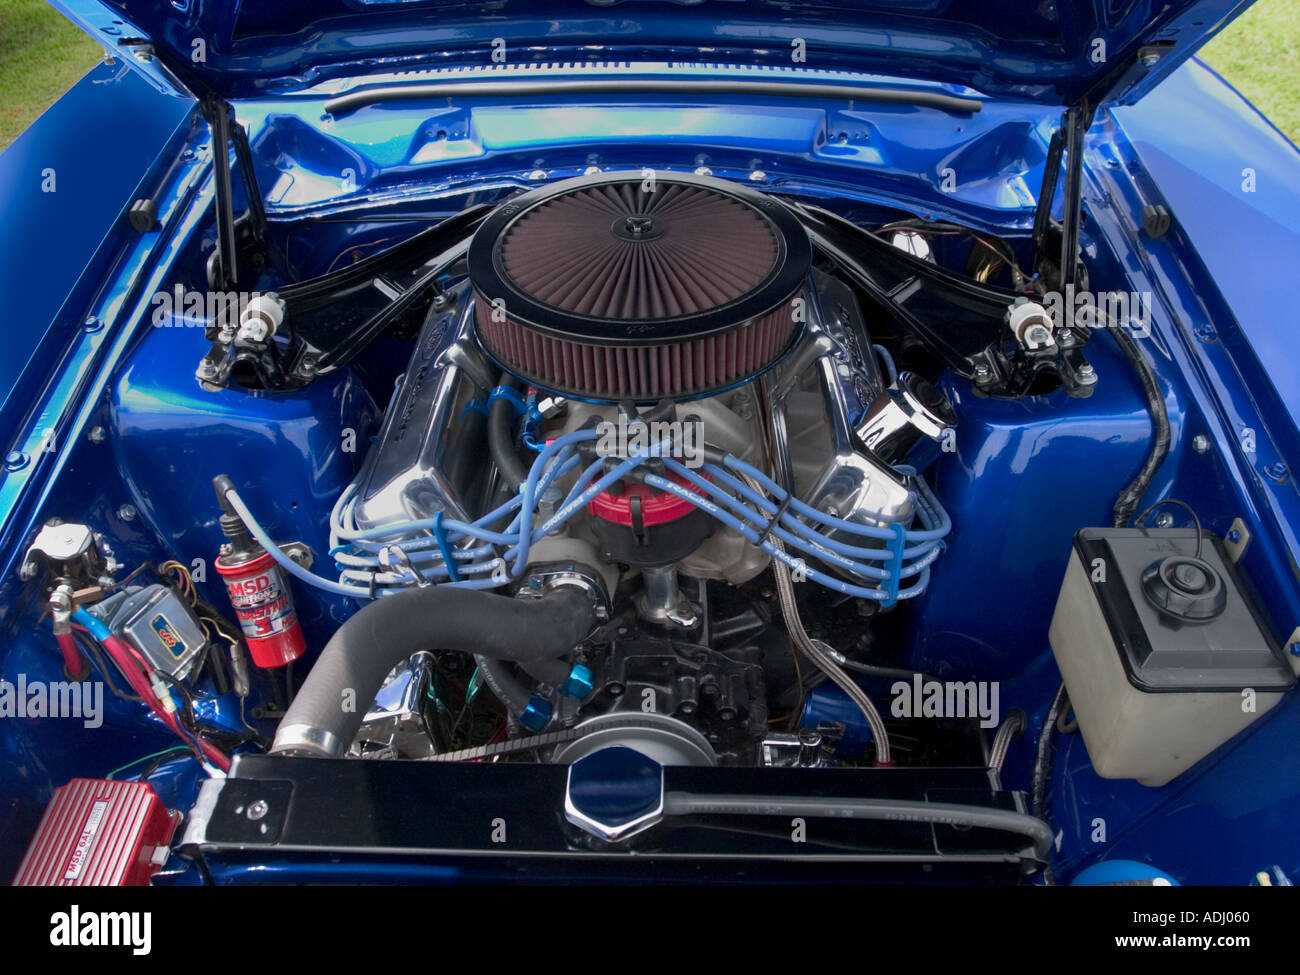 American Muscle Car Customized V8 Engine Stock Photo 2482271 Alamy